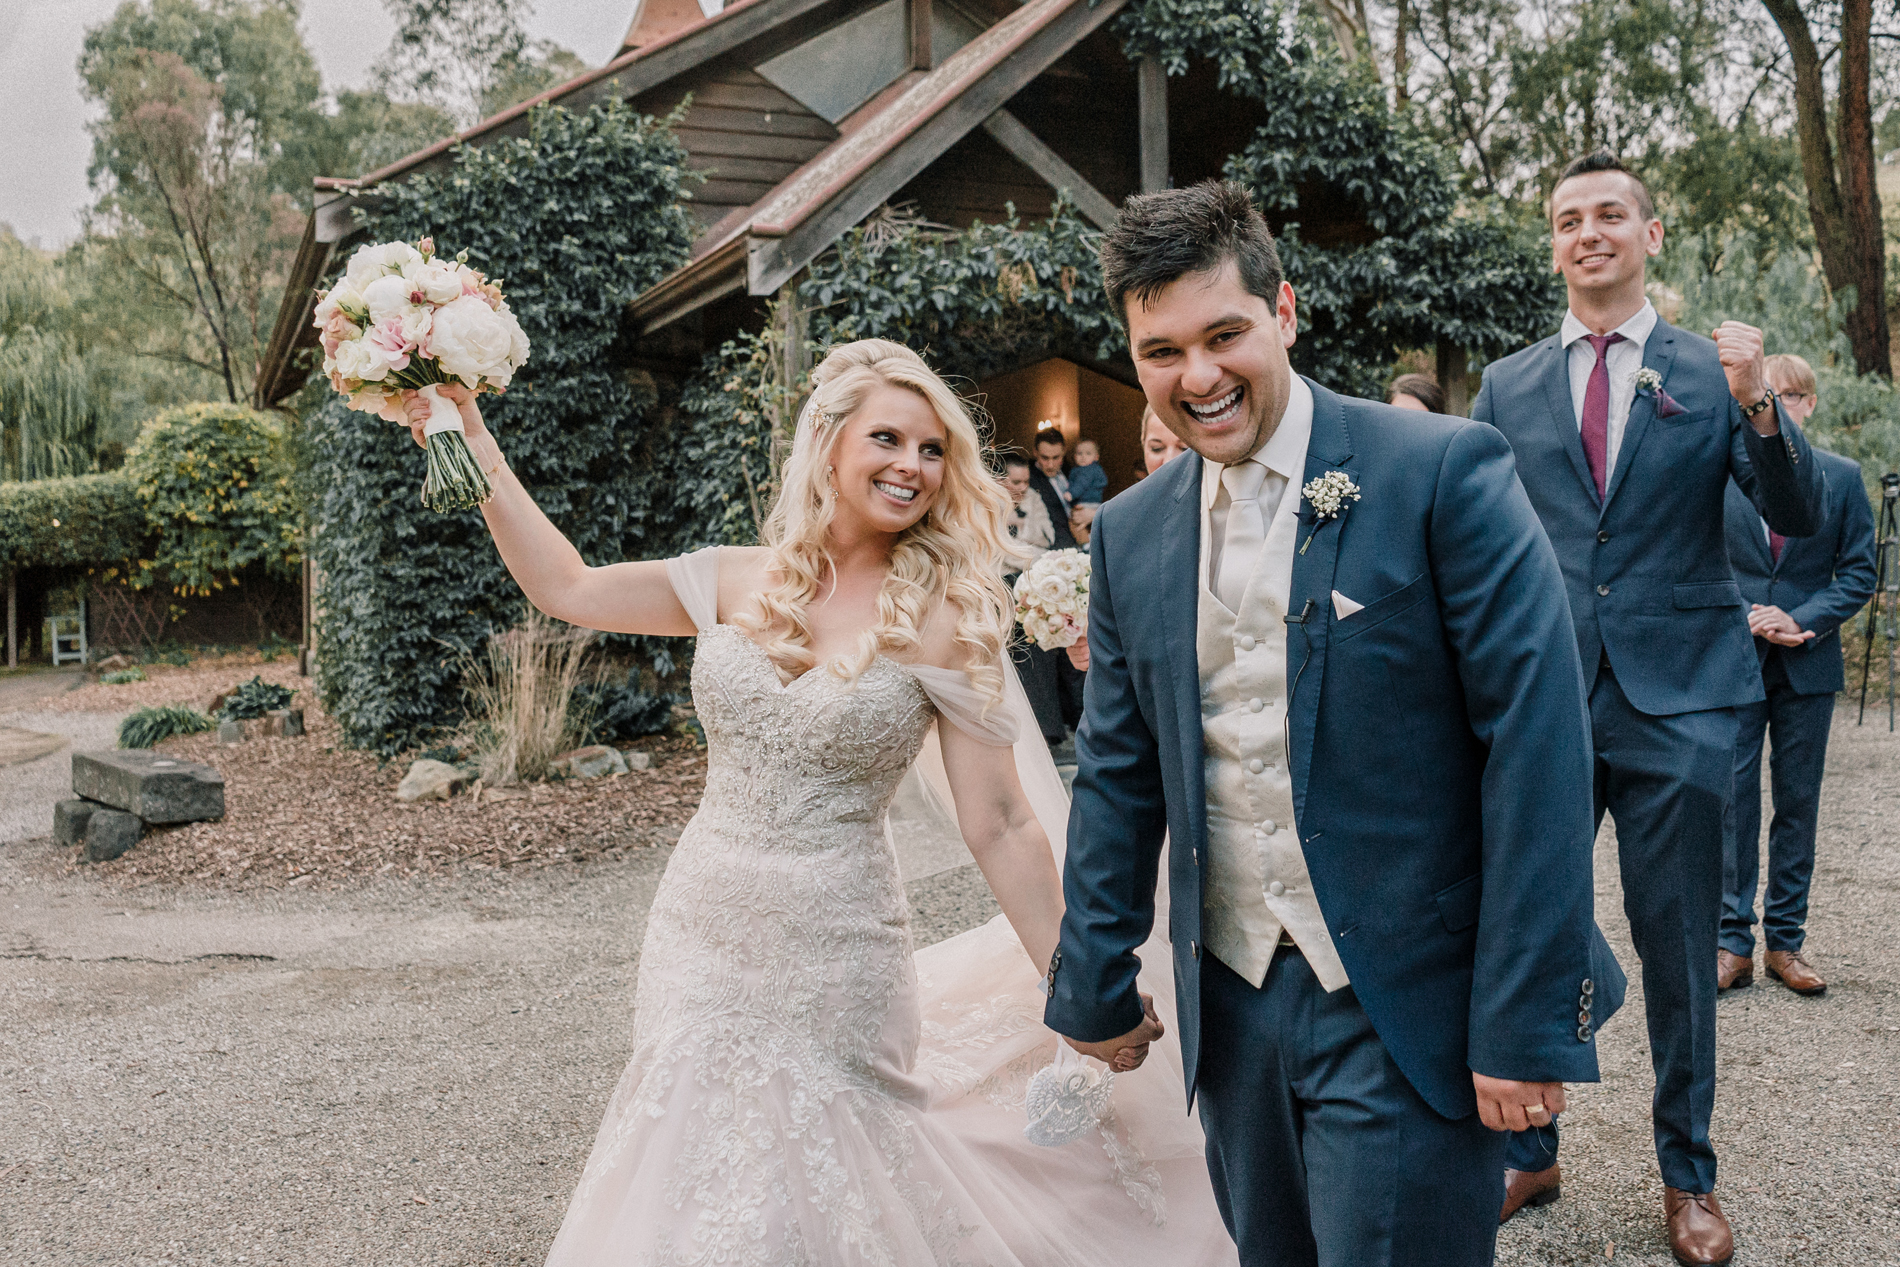 Melbourne couple cheering after their Inglewood Estate wedding candid moment featured in Easy Weddings blog 7 things your wedding photographer wish you knew